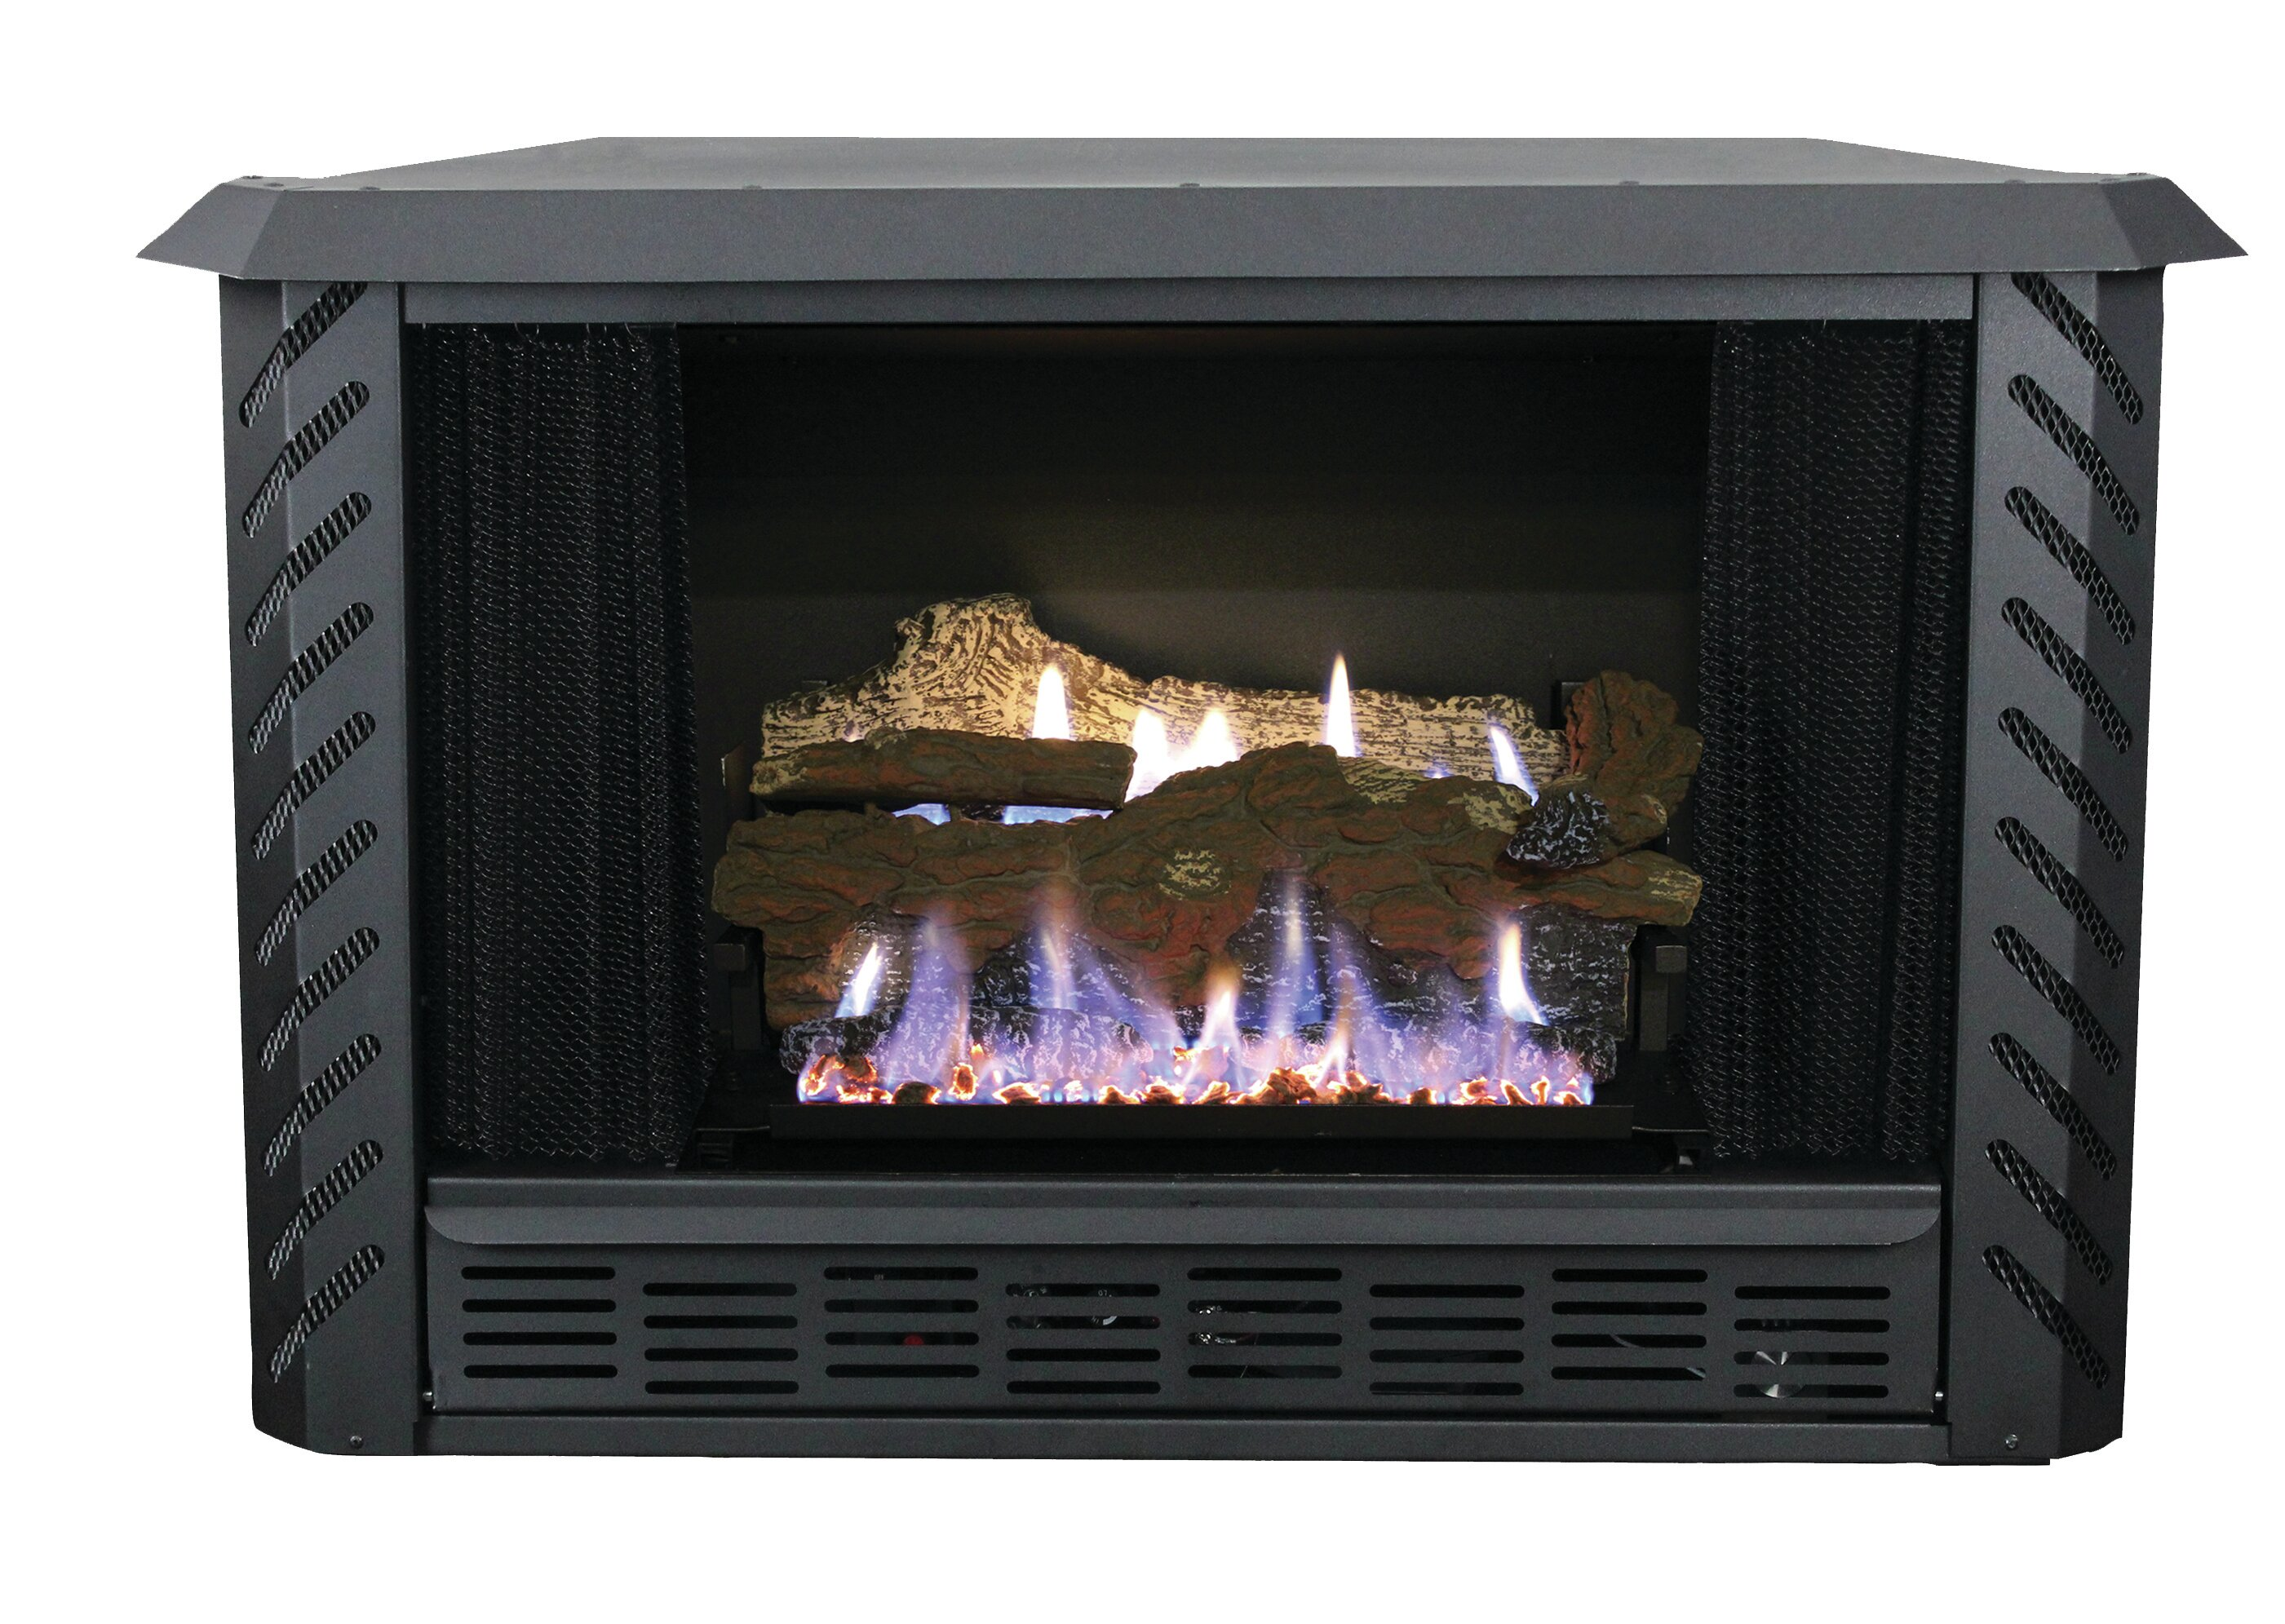 insert chaska kozy room fireplace heat product bak fireplaces inserts for gas